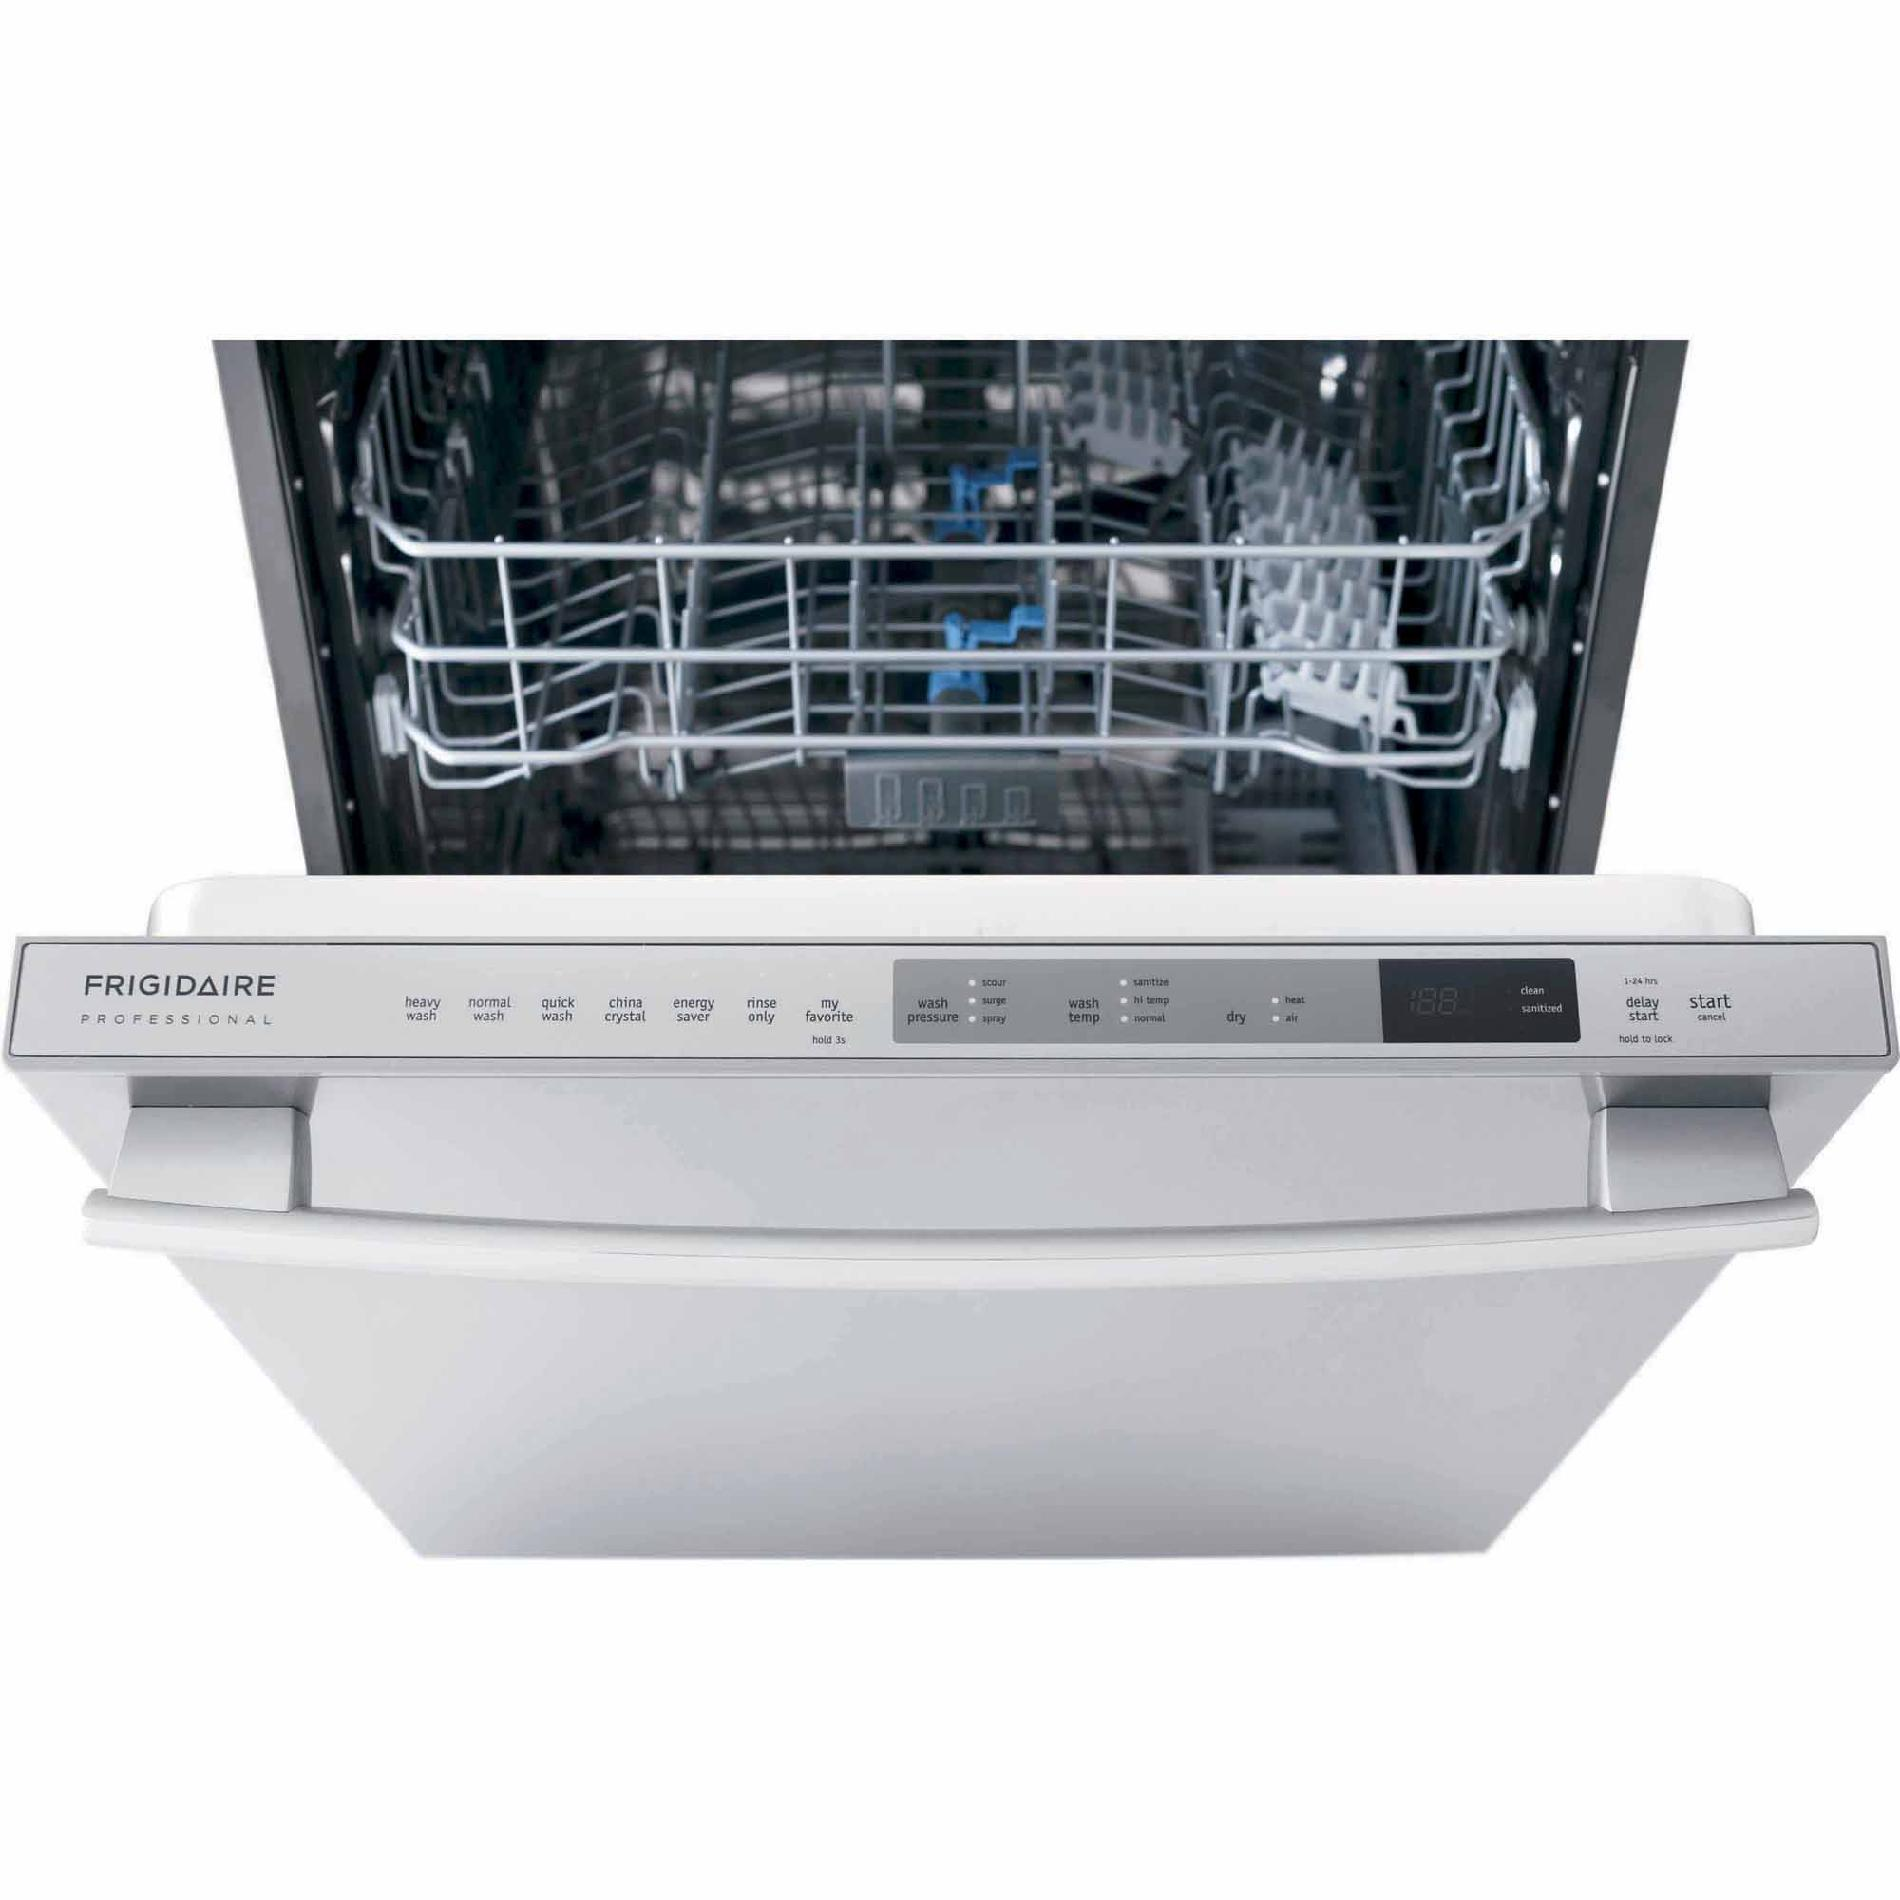 "Frigidaire 24"" Professional Built-In Dishwasher w/ Orbit Clean Wash Arm - Stainless Steel"